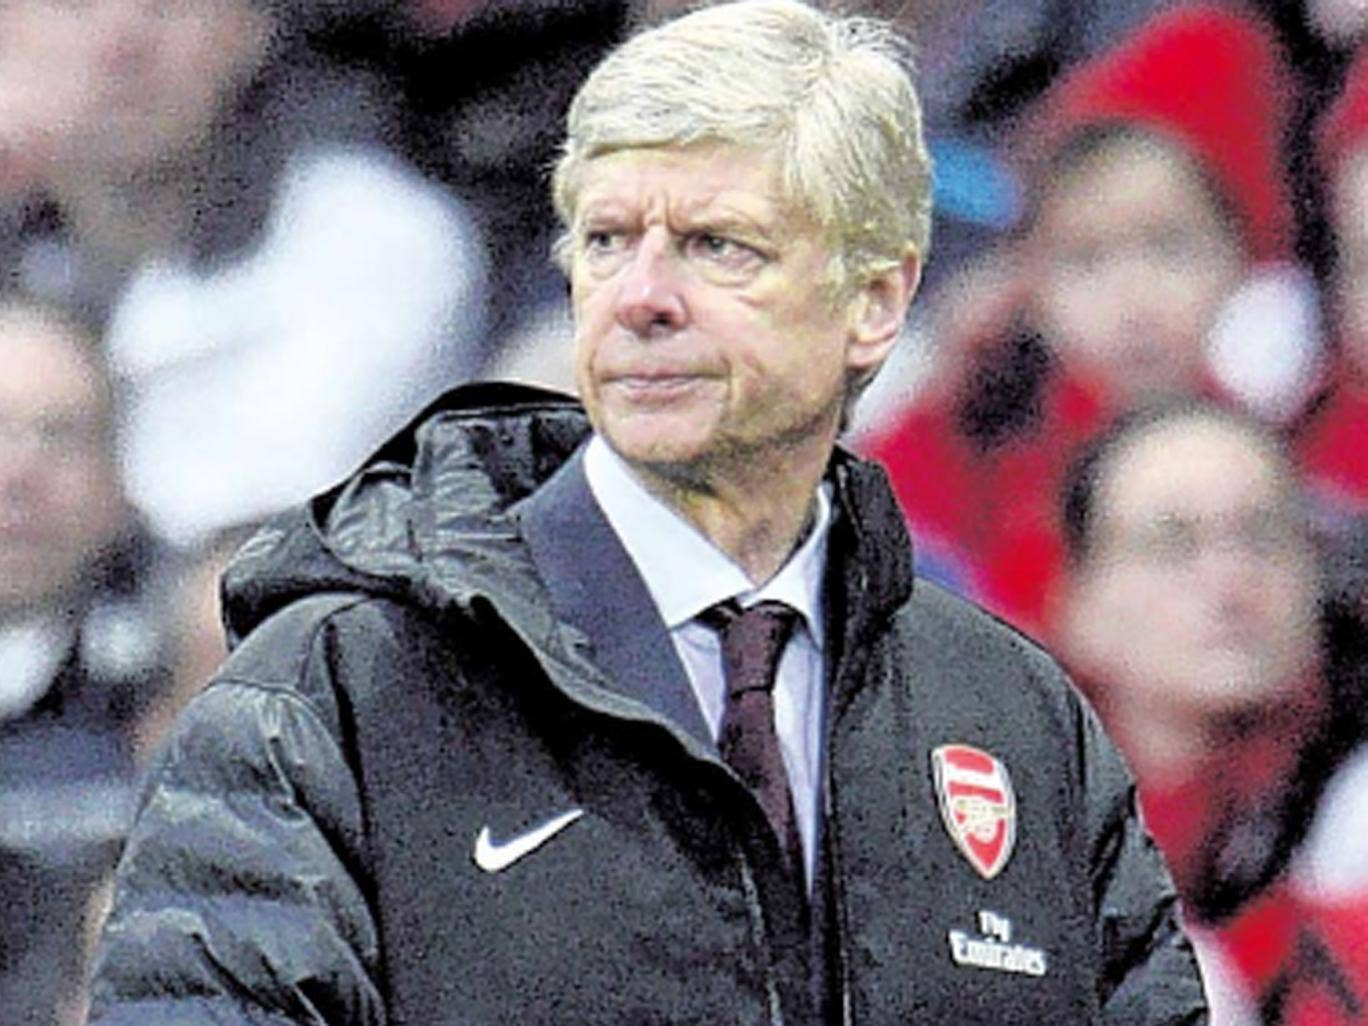 Arsène Wenger watches Arsenal's FA Cup defeat to Blackburn